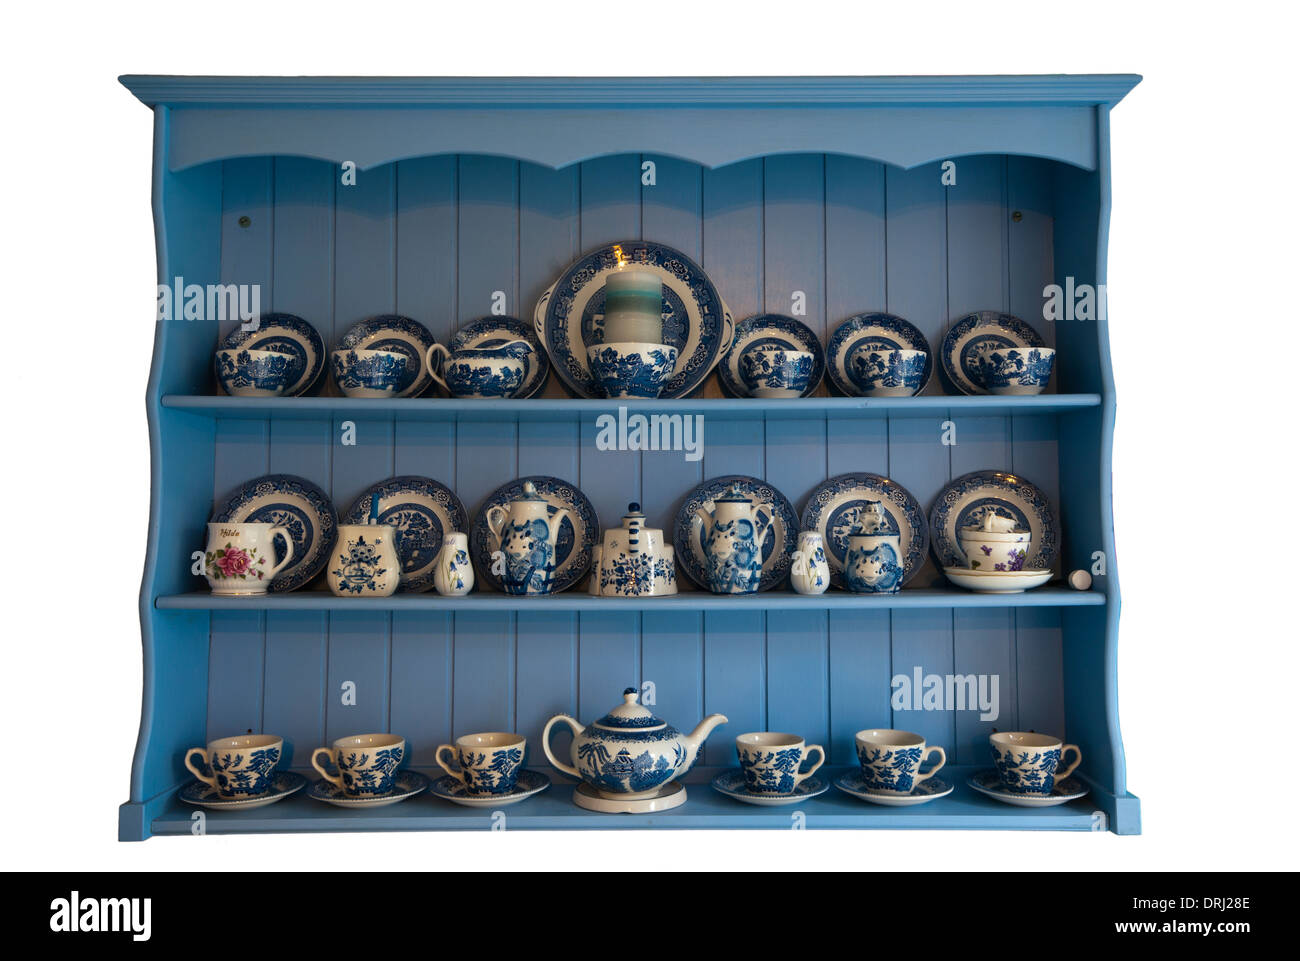 Wooden Wall Display Unit With Blue and White Crockery - Stock Image